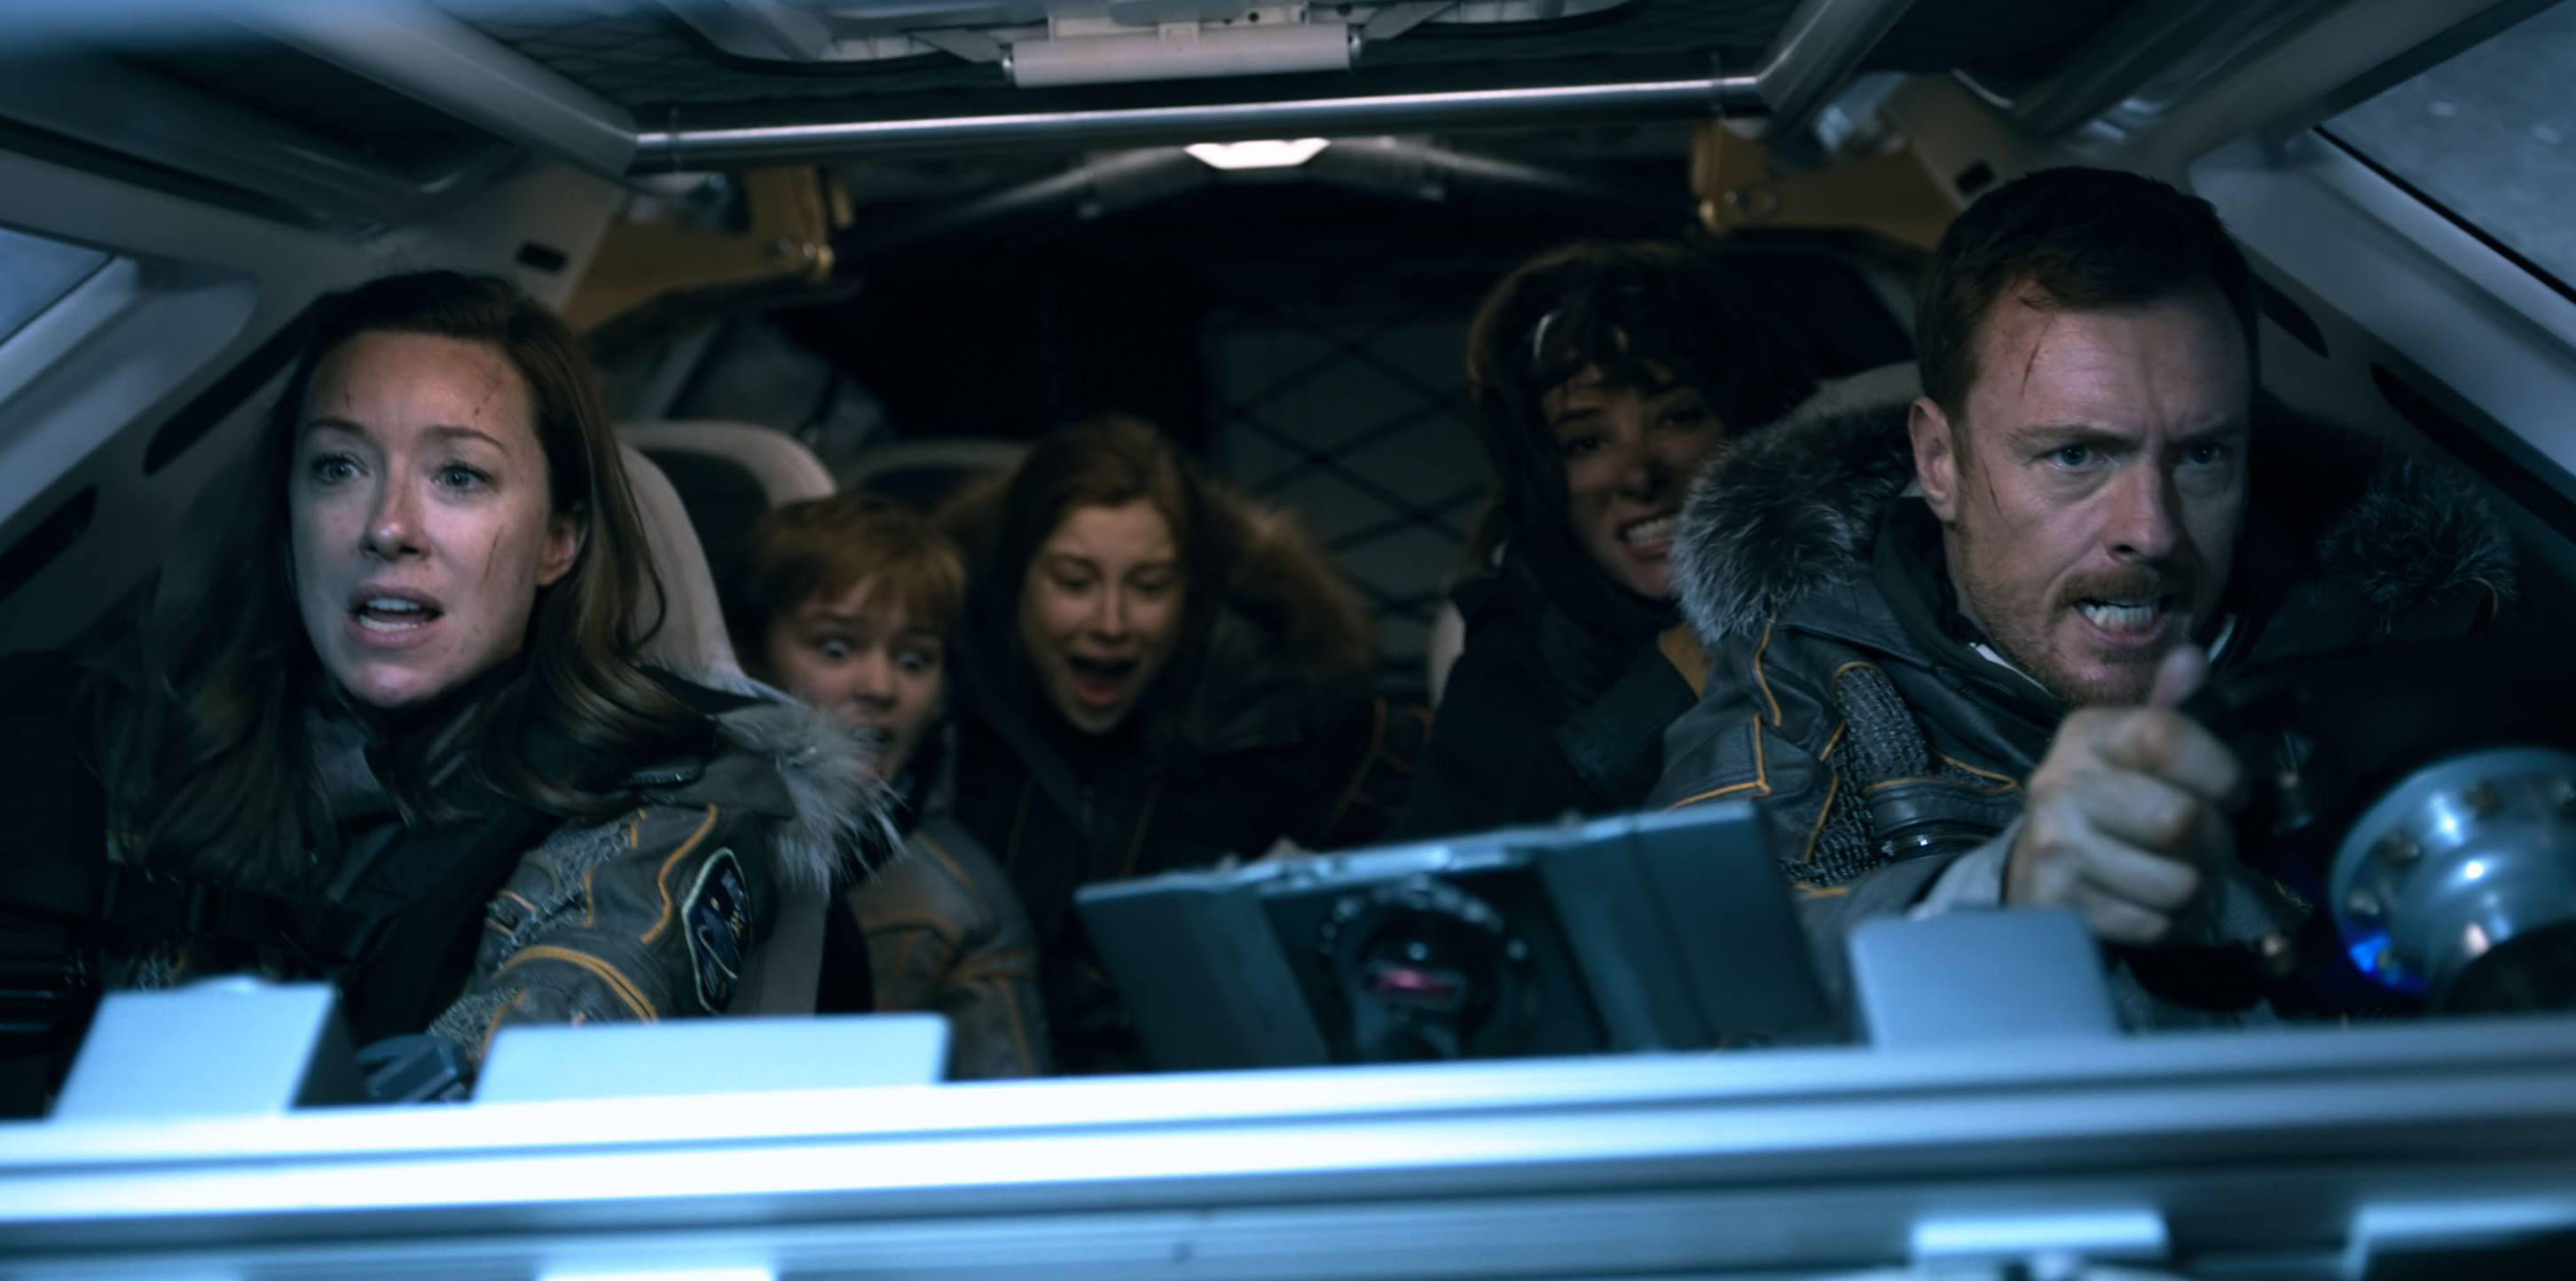 'Lost in Space' Renewed For 3rd and Final Season on Netflix